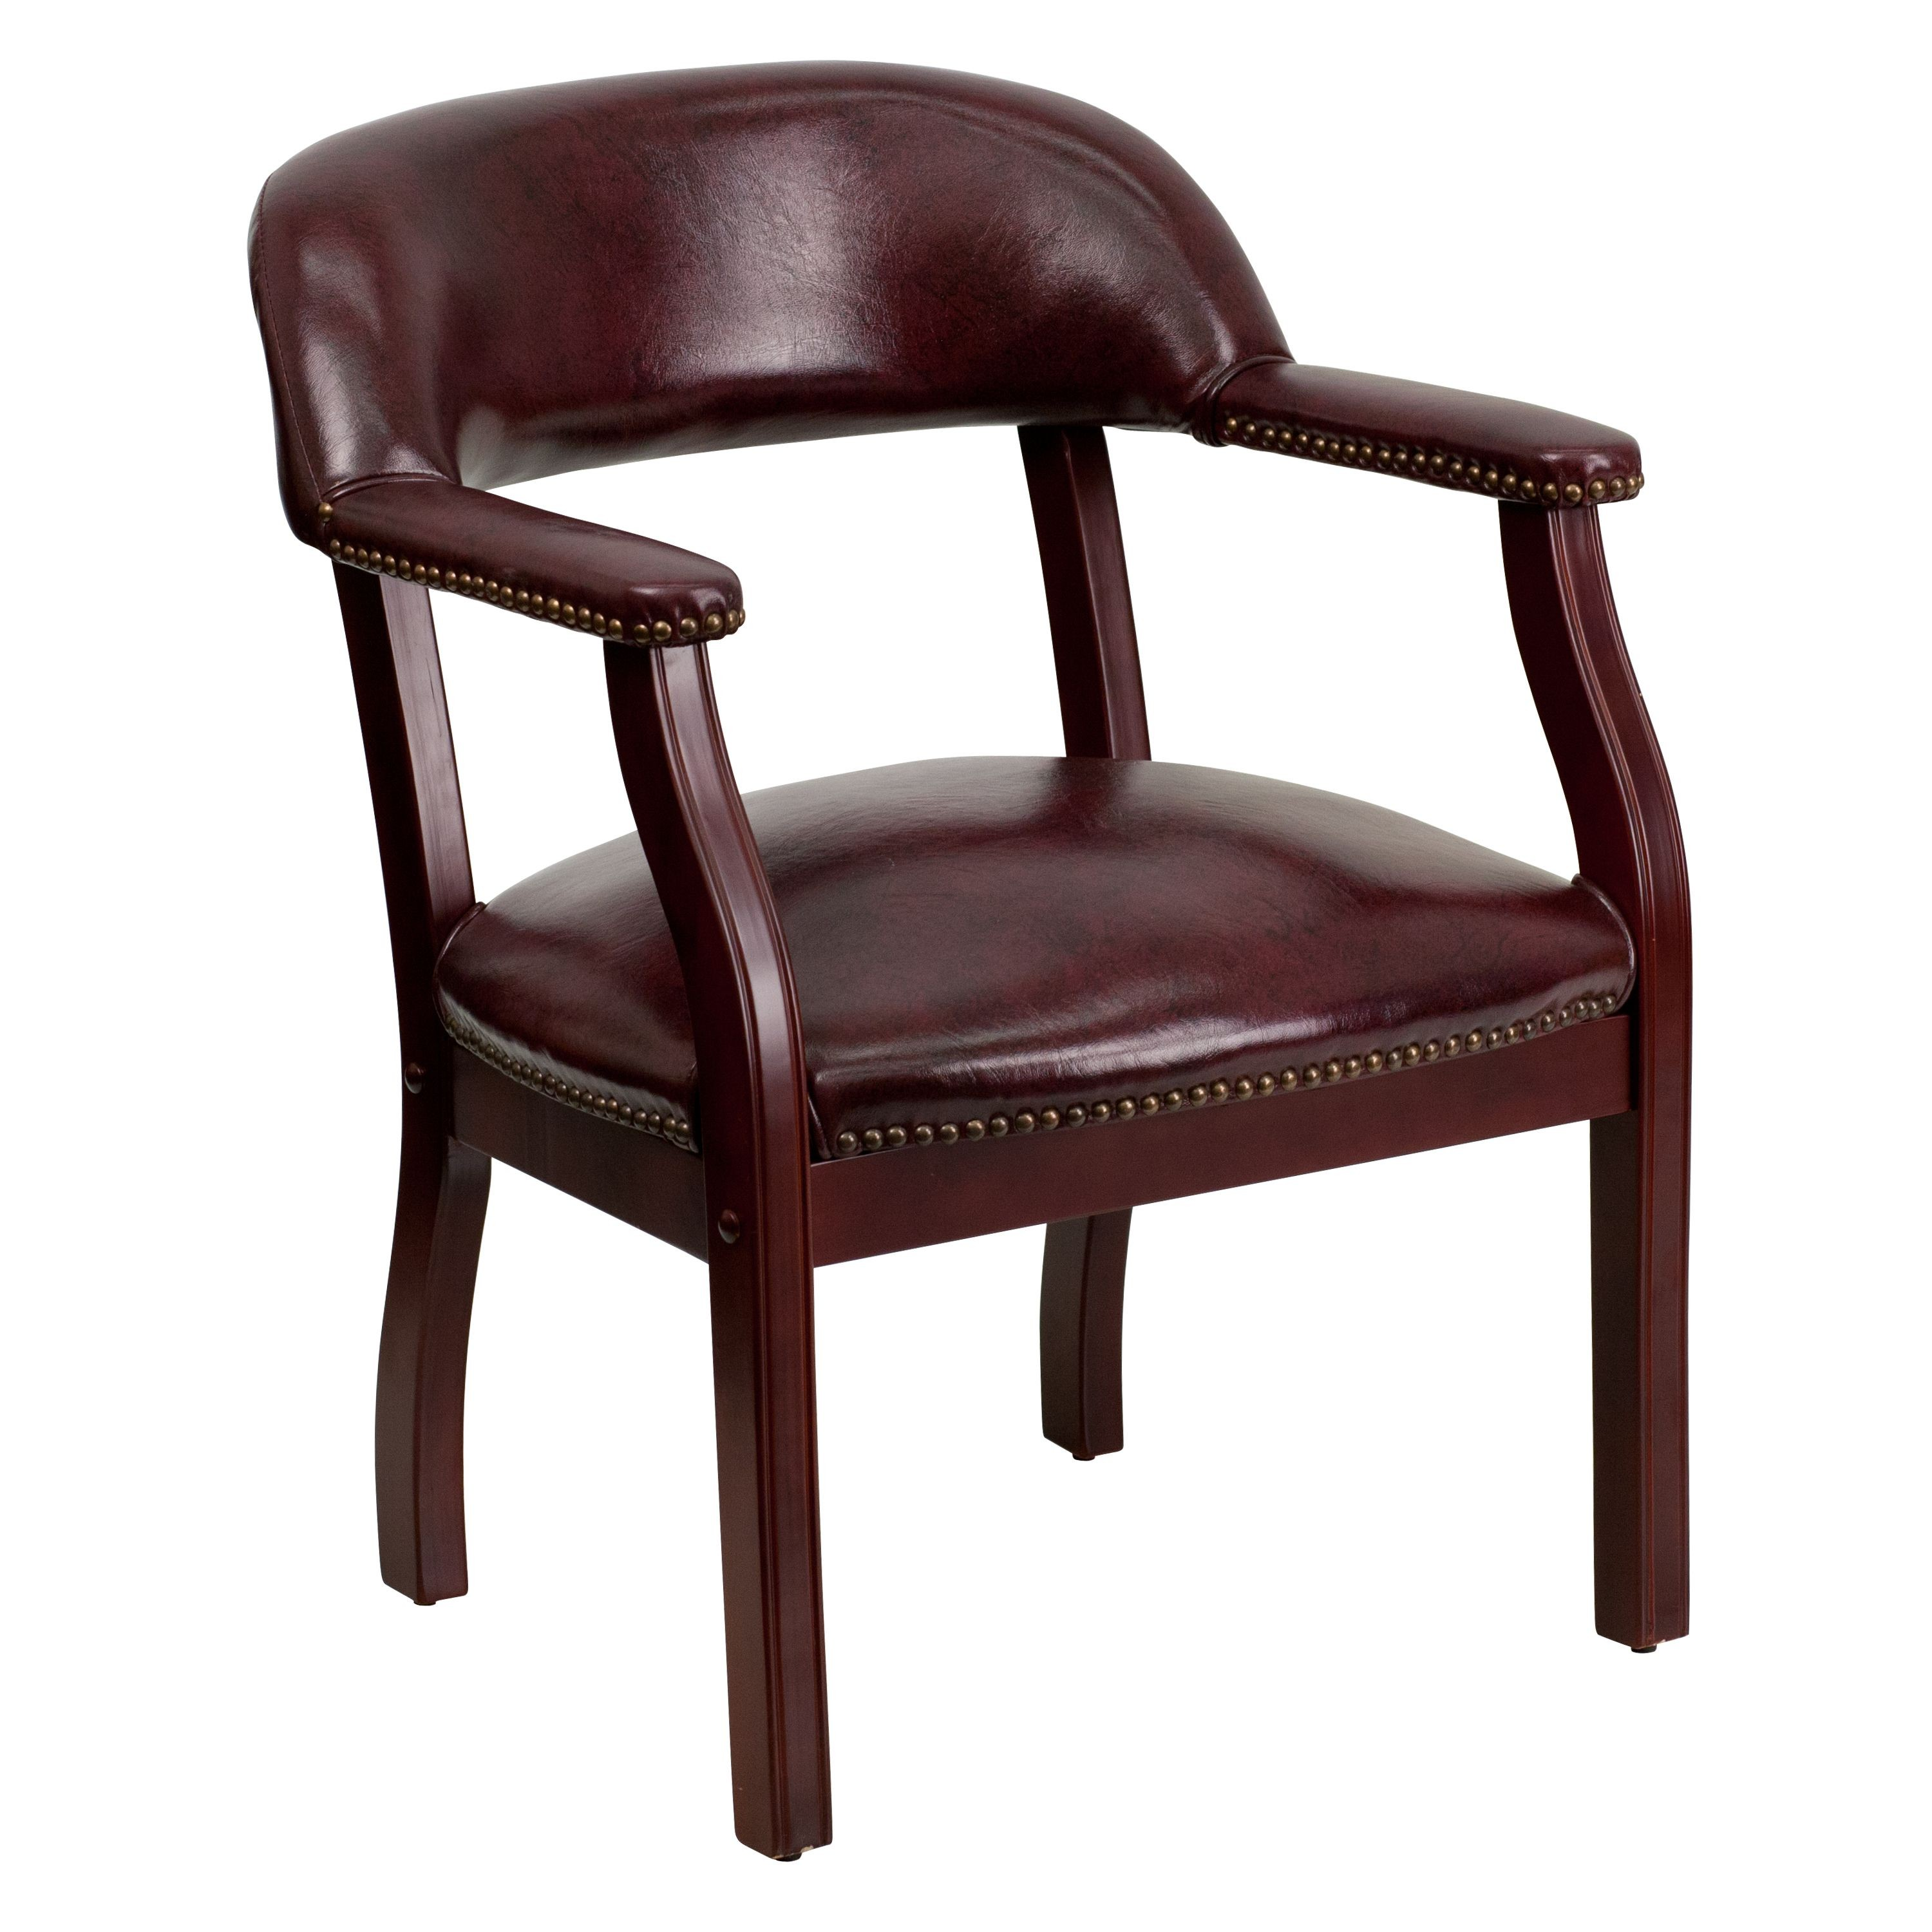 Flash Furniture B-Z105-OXBLOOD-GG Oxblood Vinyl Luxurious Conference Chair